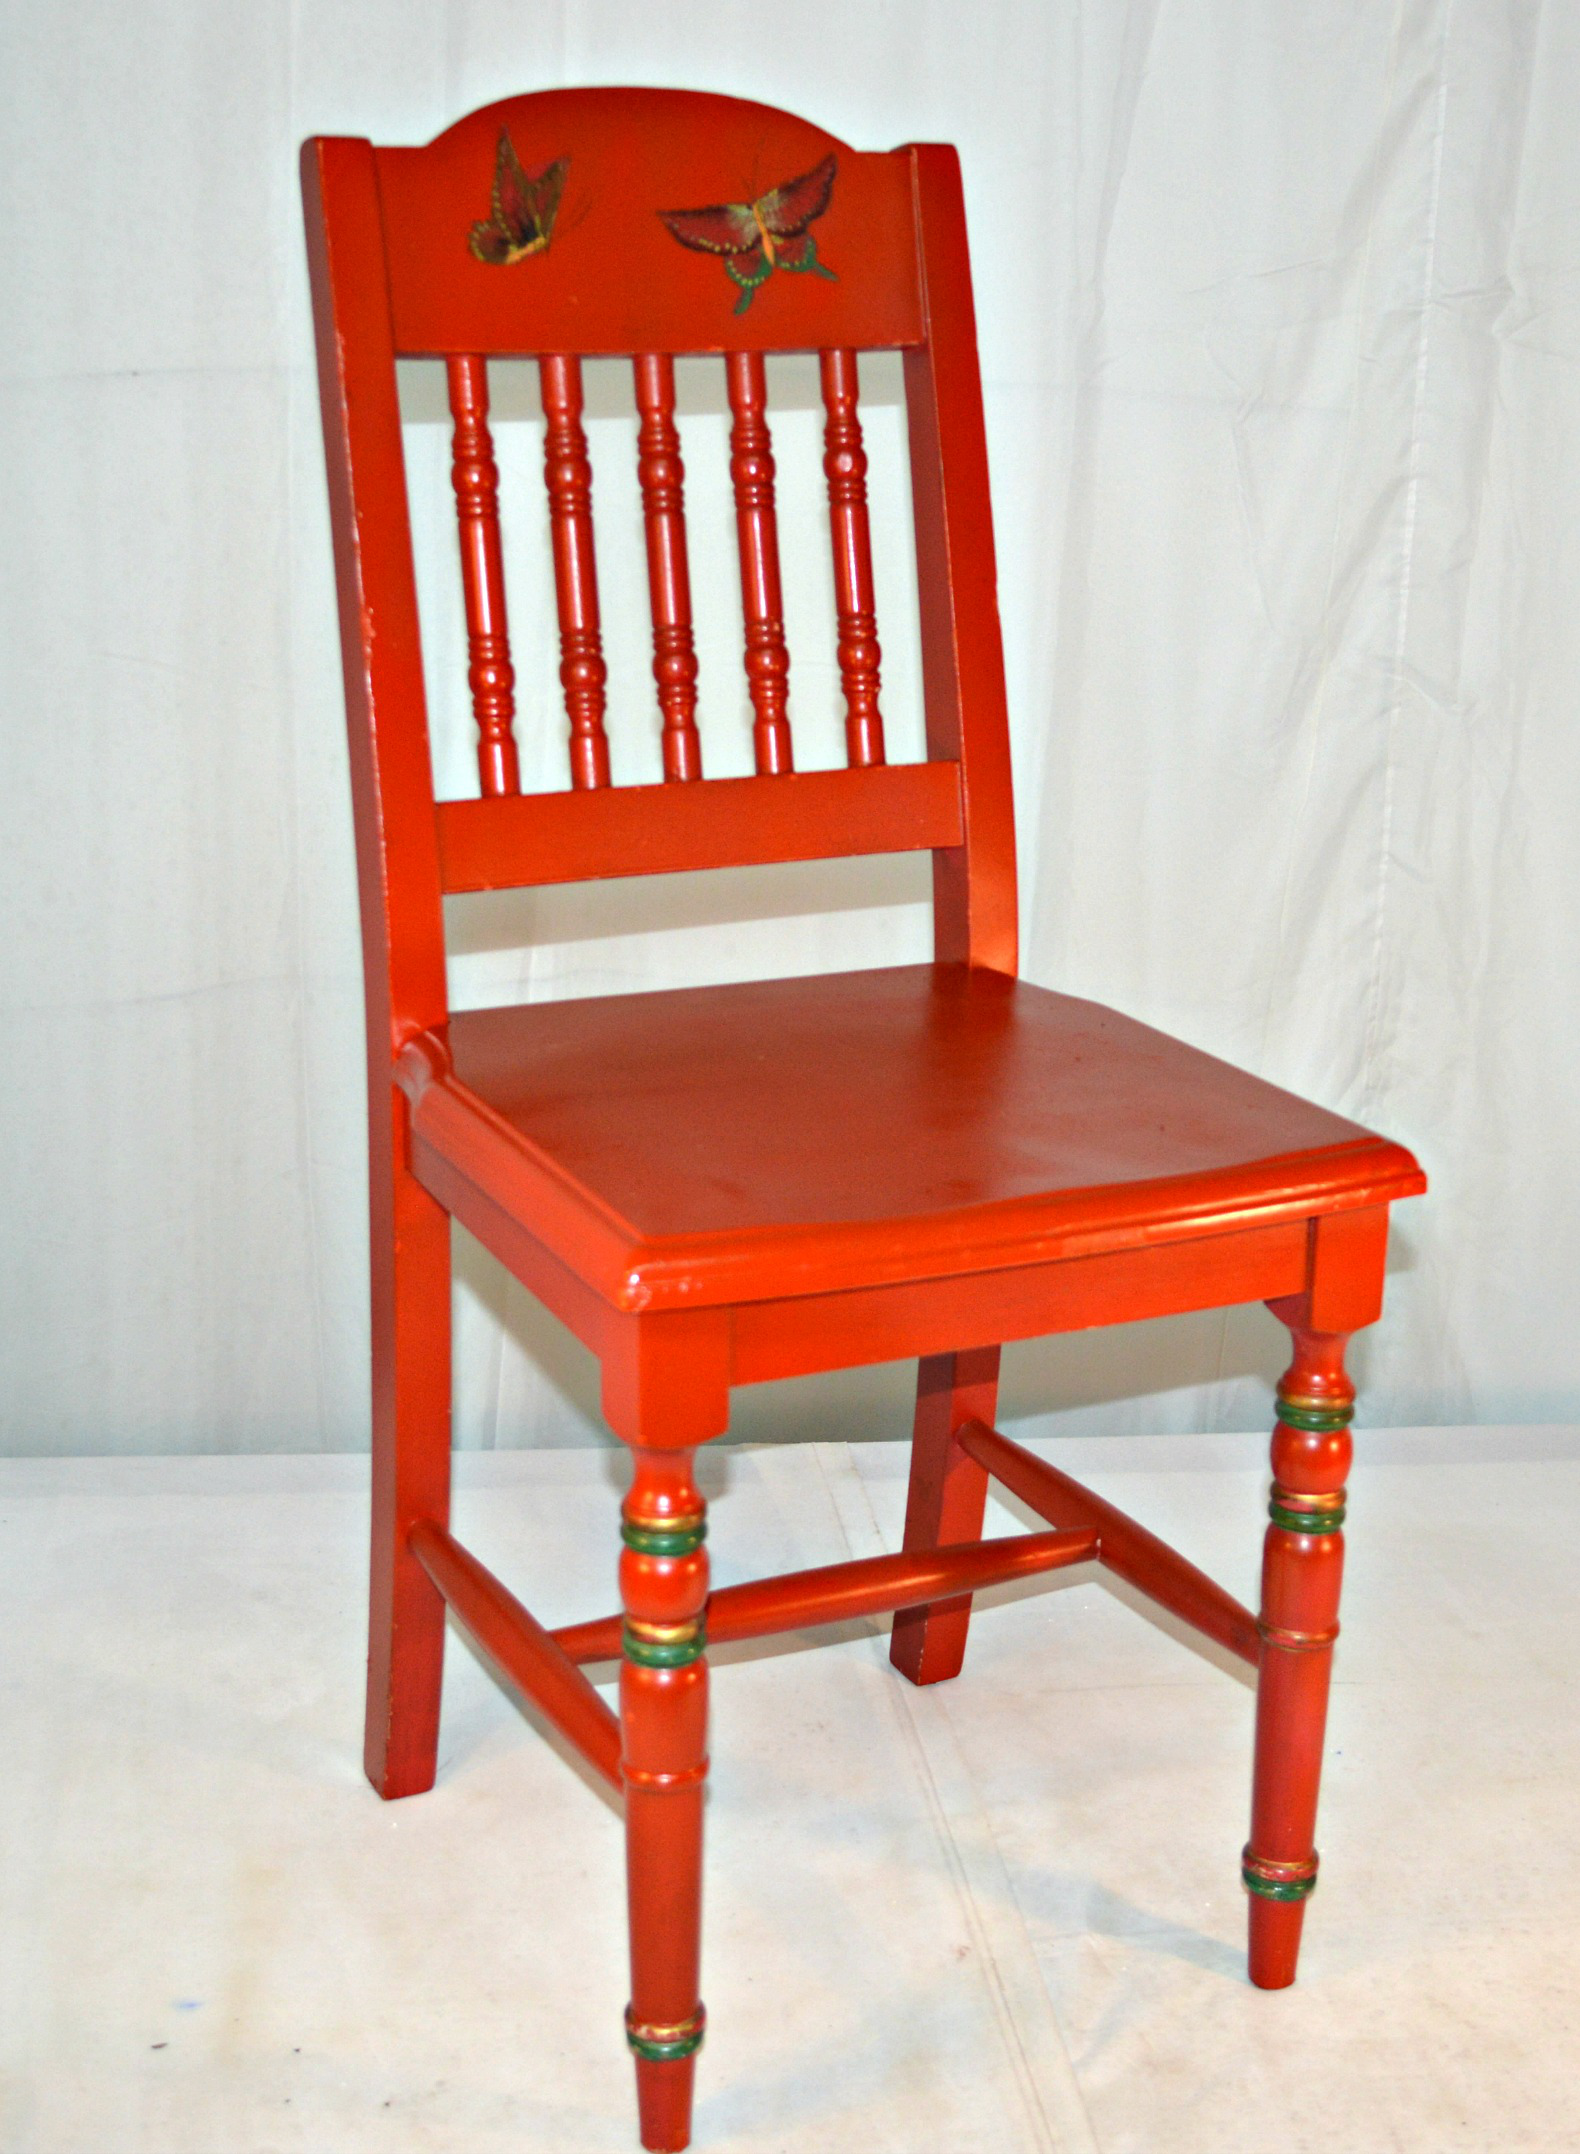 Charmant Mid 20th Century Red Chinoiserie Wooden Vanity Chair For Sale   Image 5 Of 9